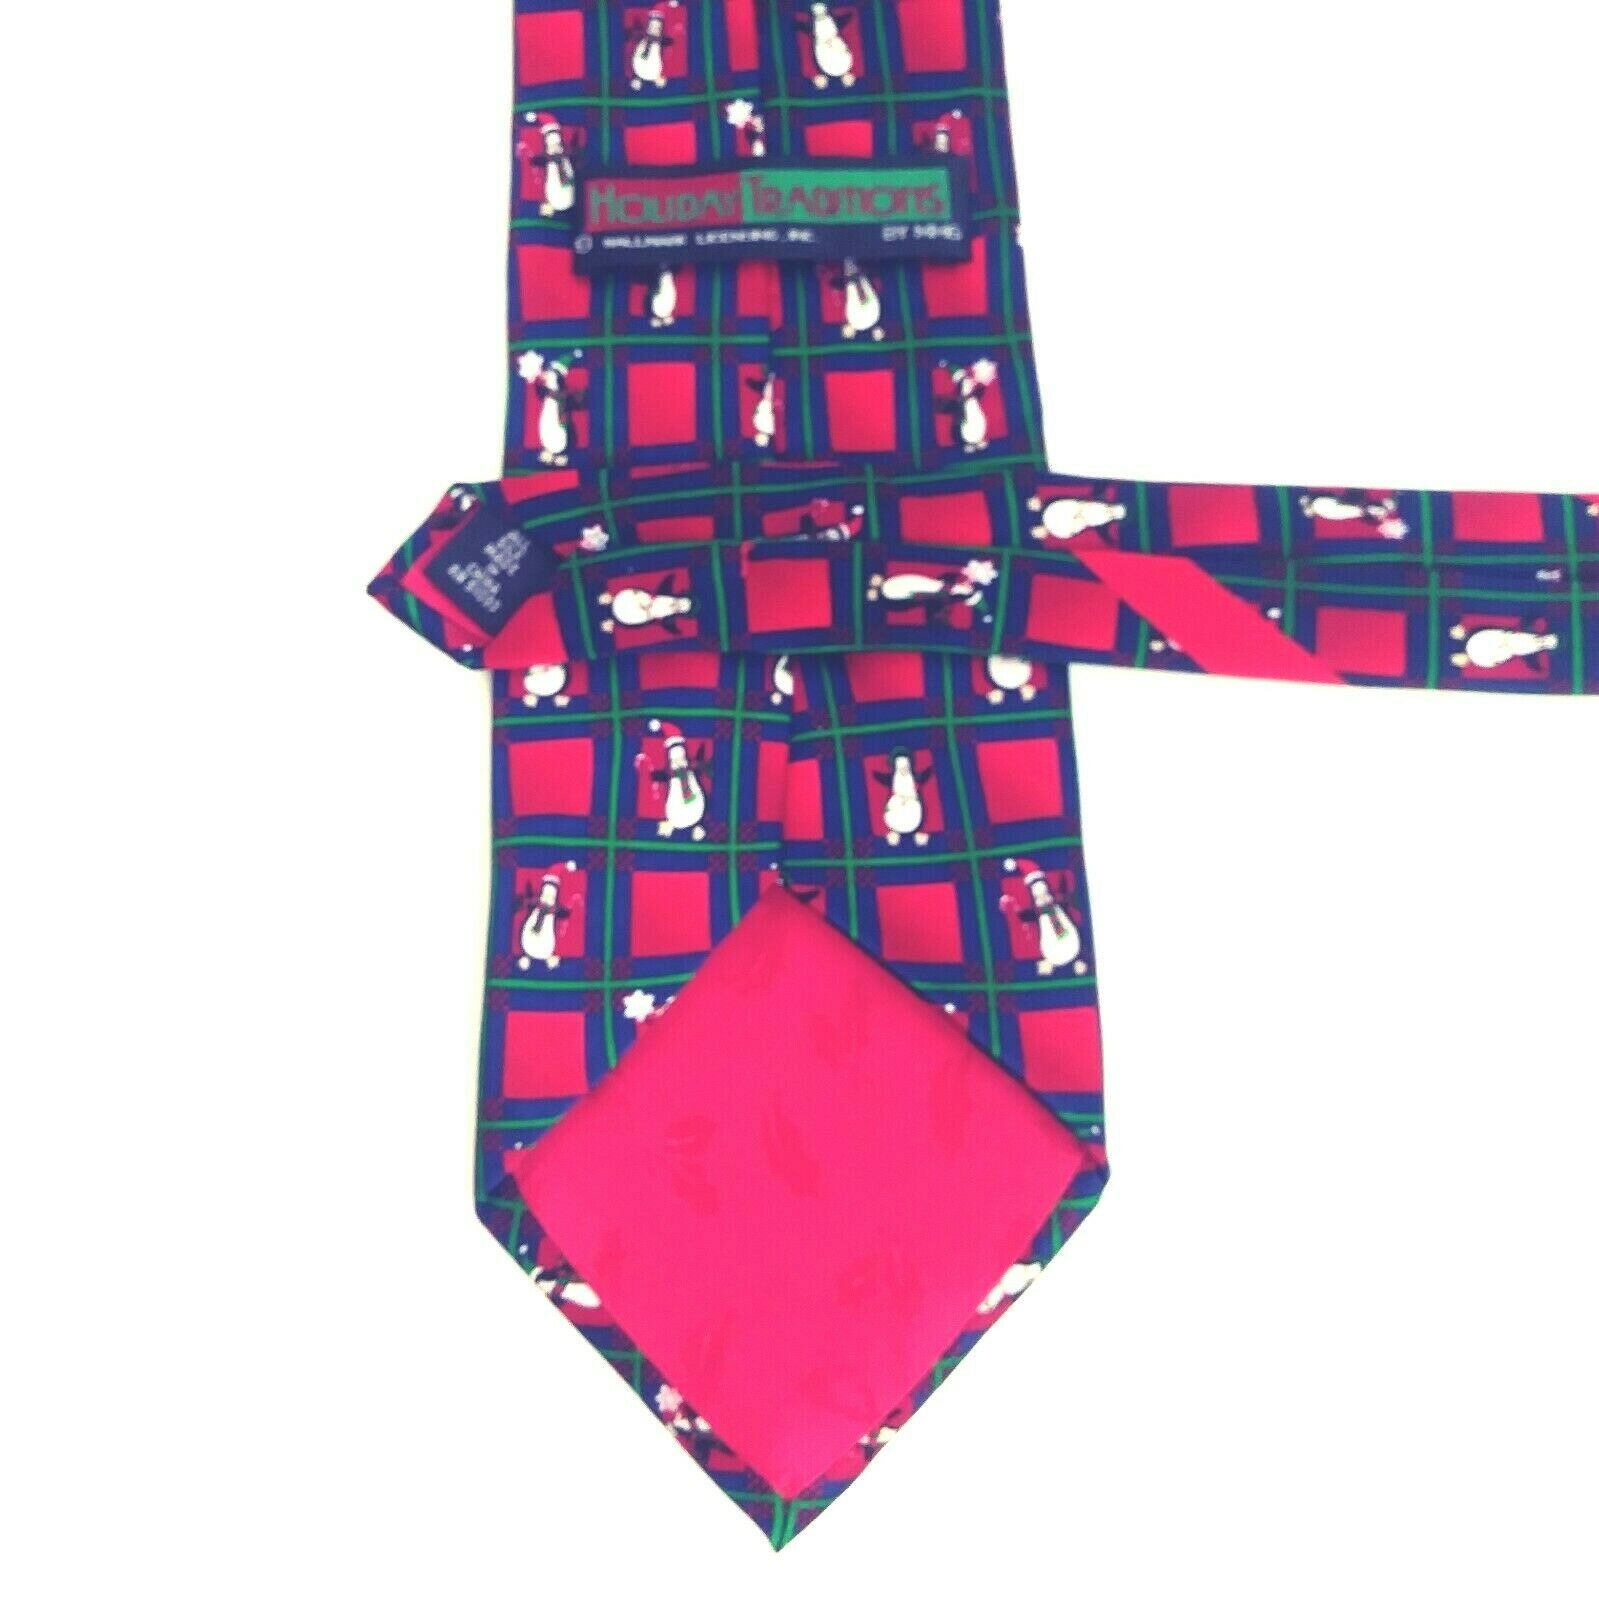 Hallmark Holiday Traditions Penguin Christmas Tie Red & Green 100% Silk NWOT